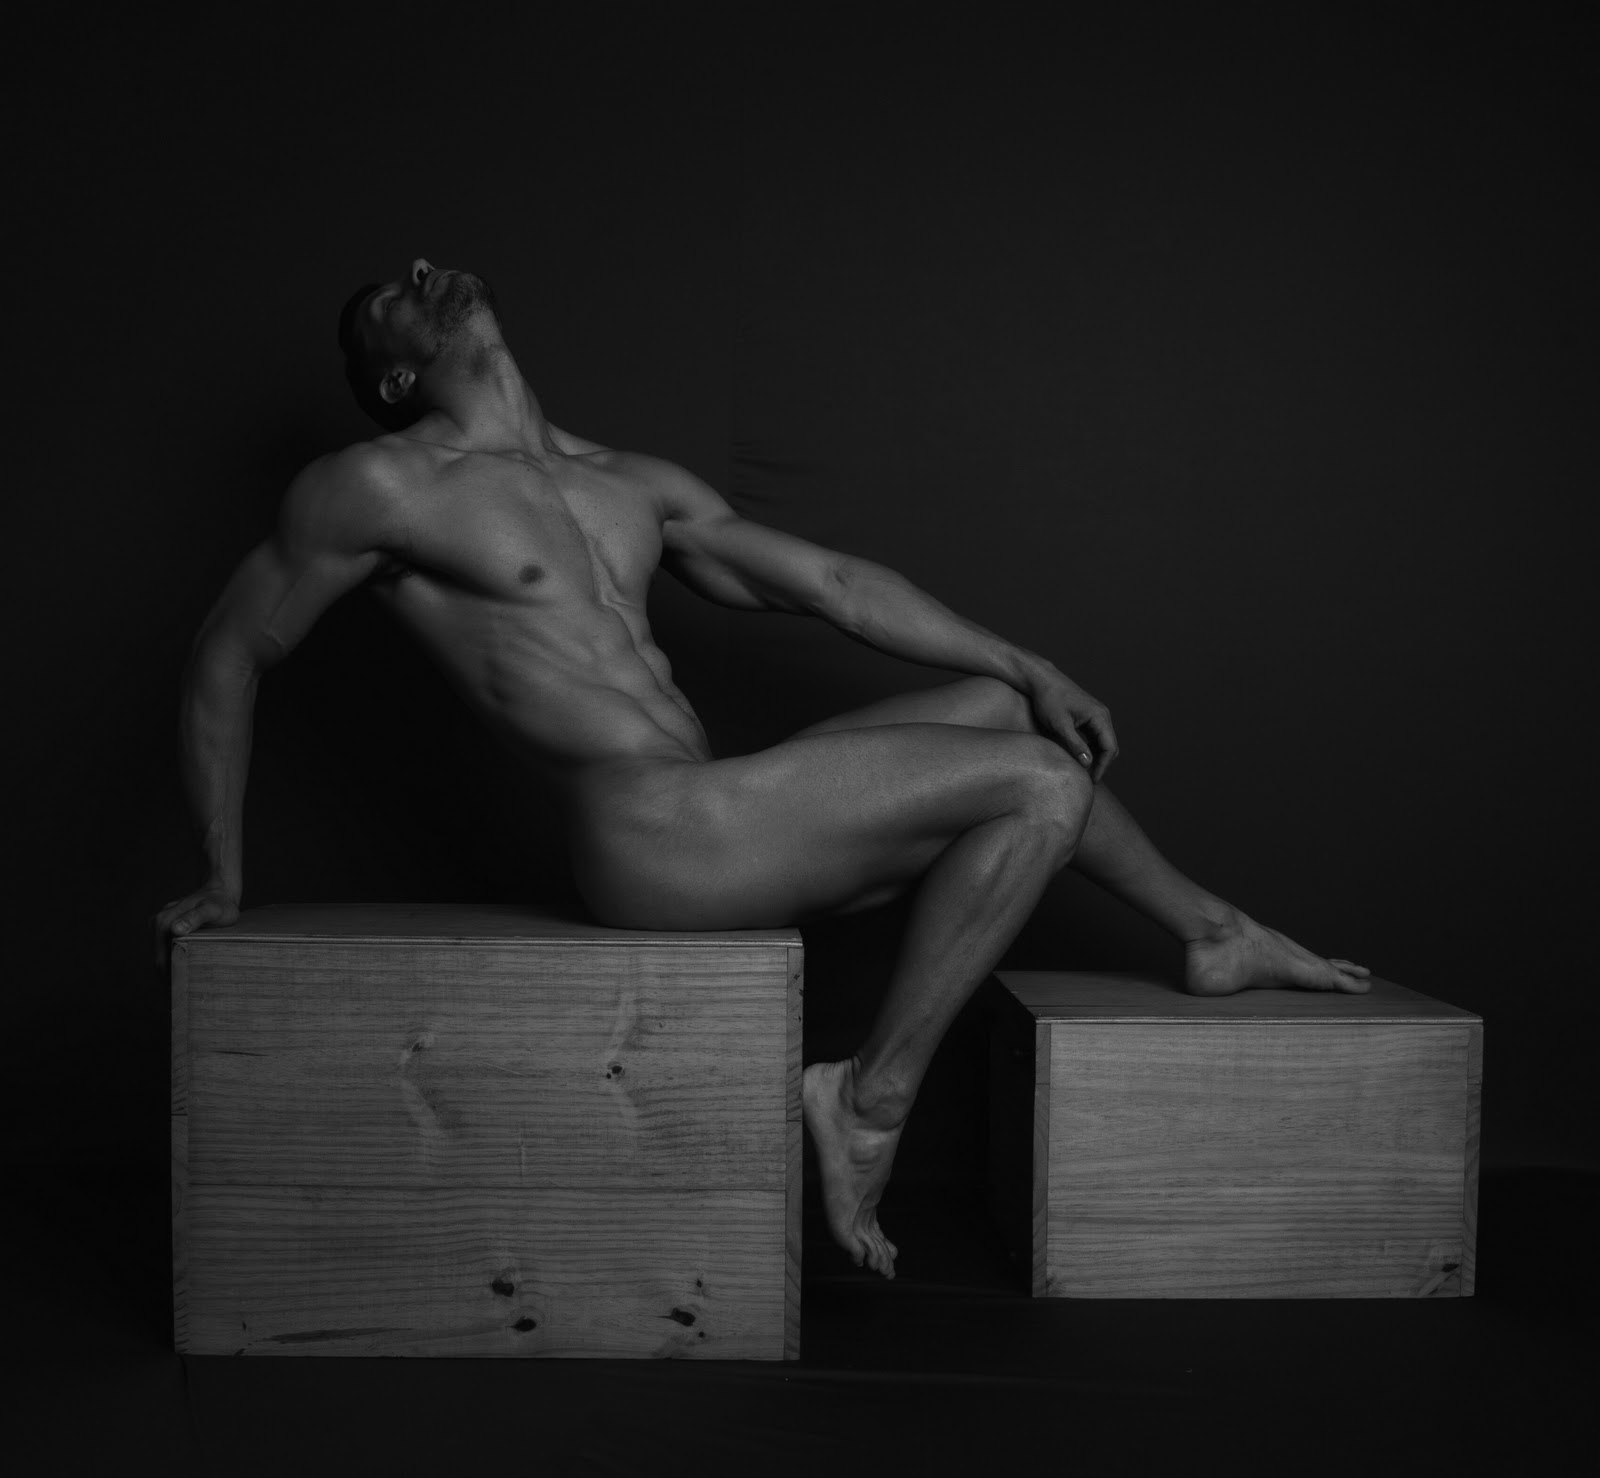 MenS SanA in CorporE SanO (III), by Marcelo Magnani ft Tiago Volpato (NSFW).